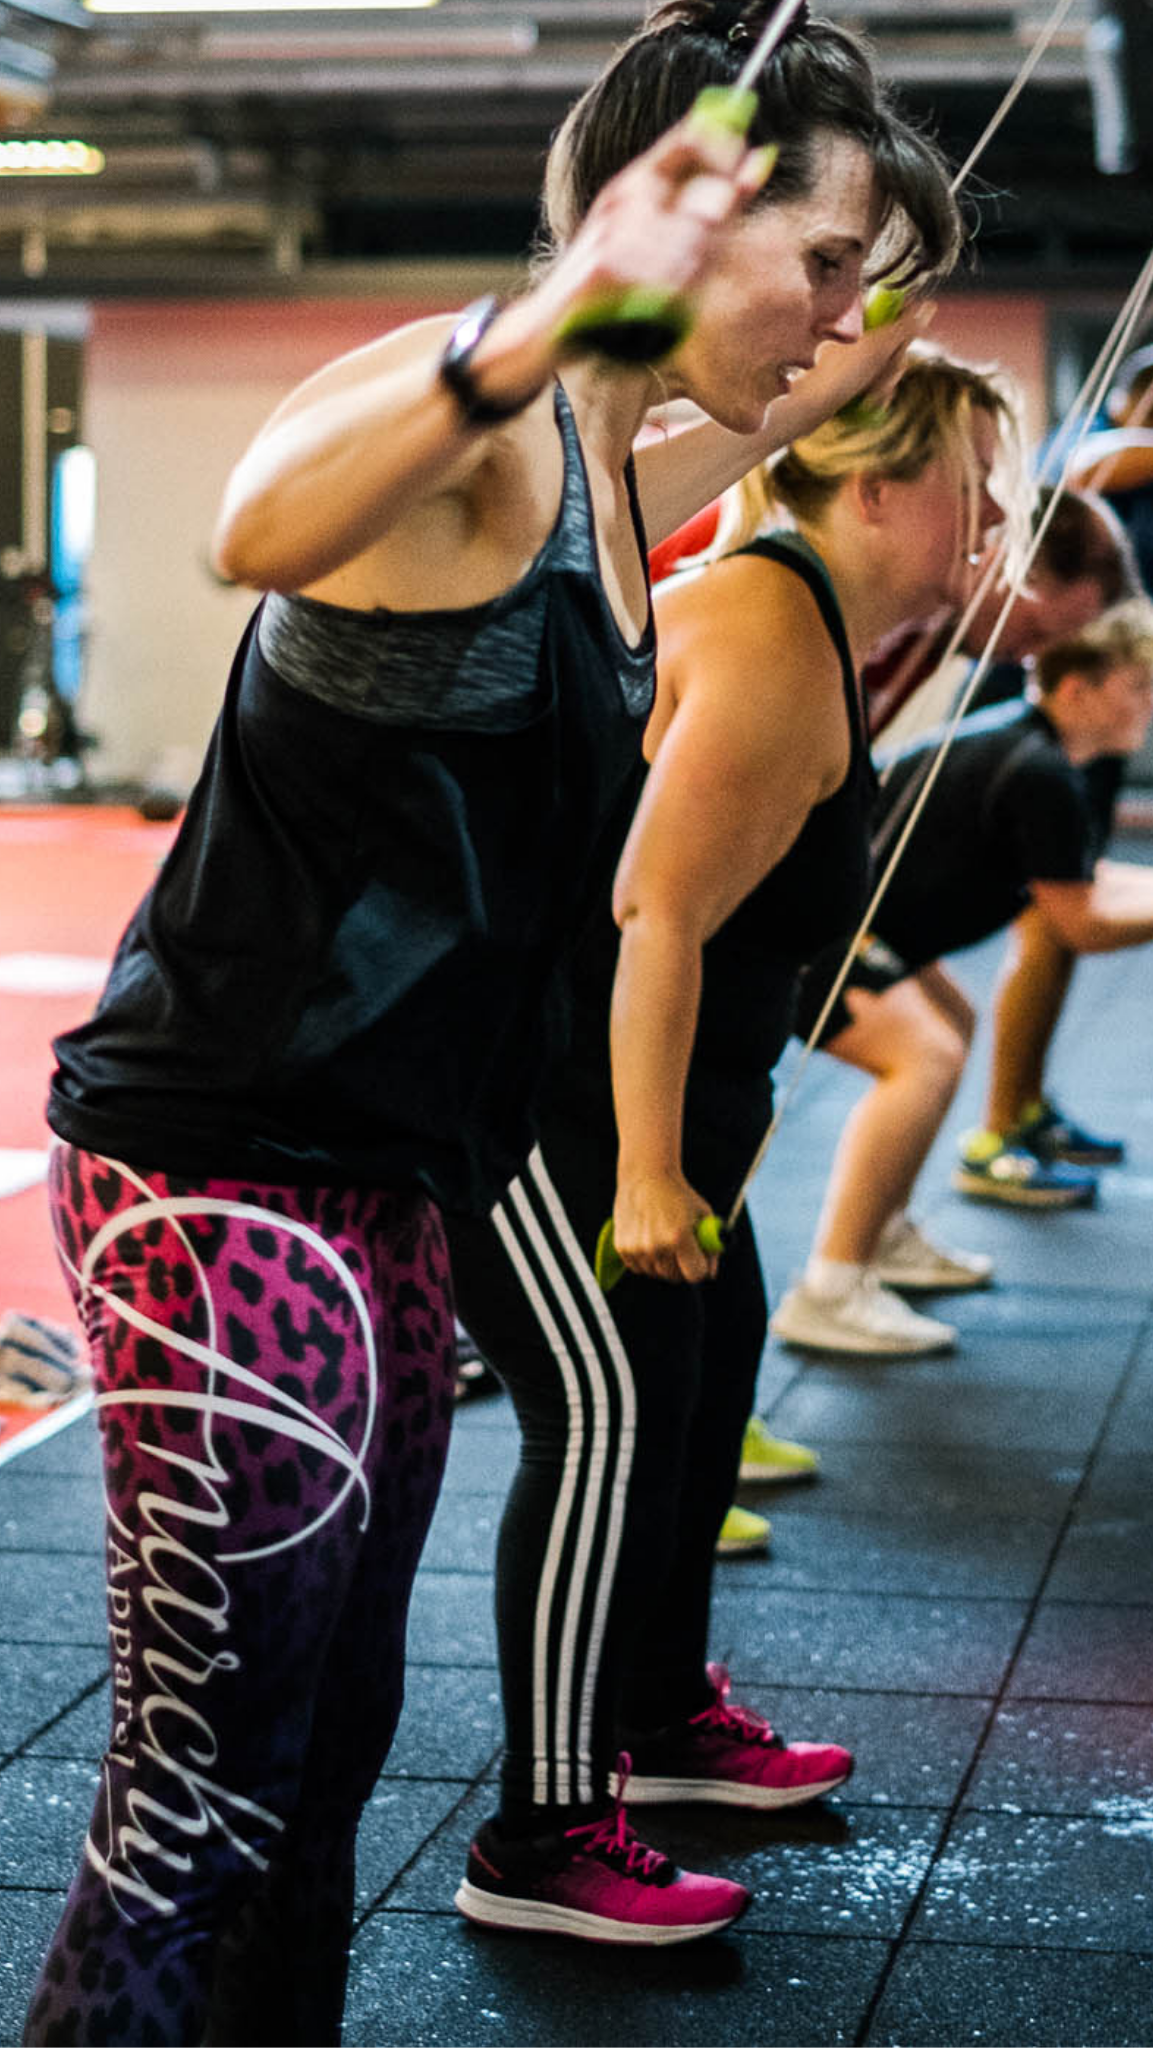 Ski ergs, Rowers, Bikes and burpees - Looking to be able to push yourself that little bit harder, recover faster and give yourself the ability to run, move and live in the Fast Lane… Our Get Fit Class will help you get your heart and lungs working!